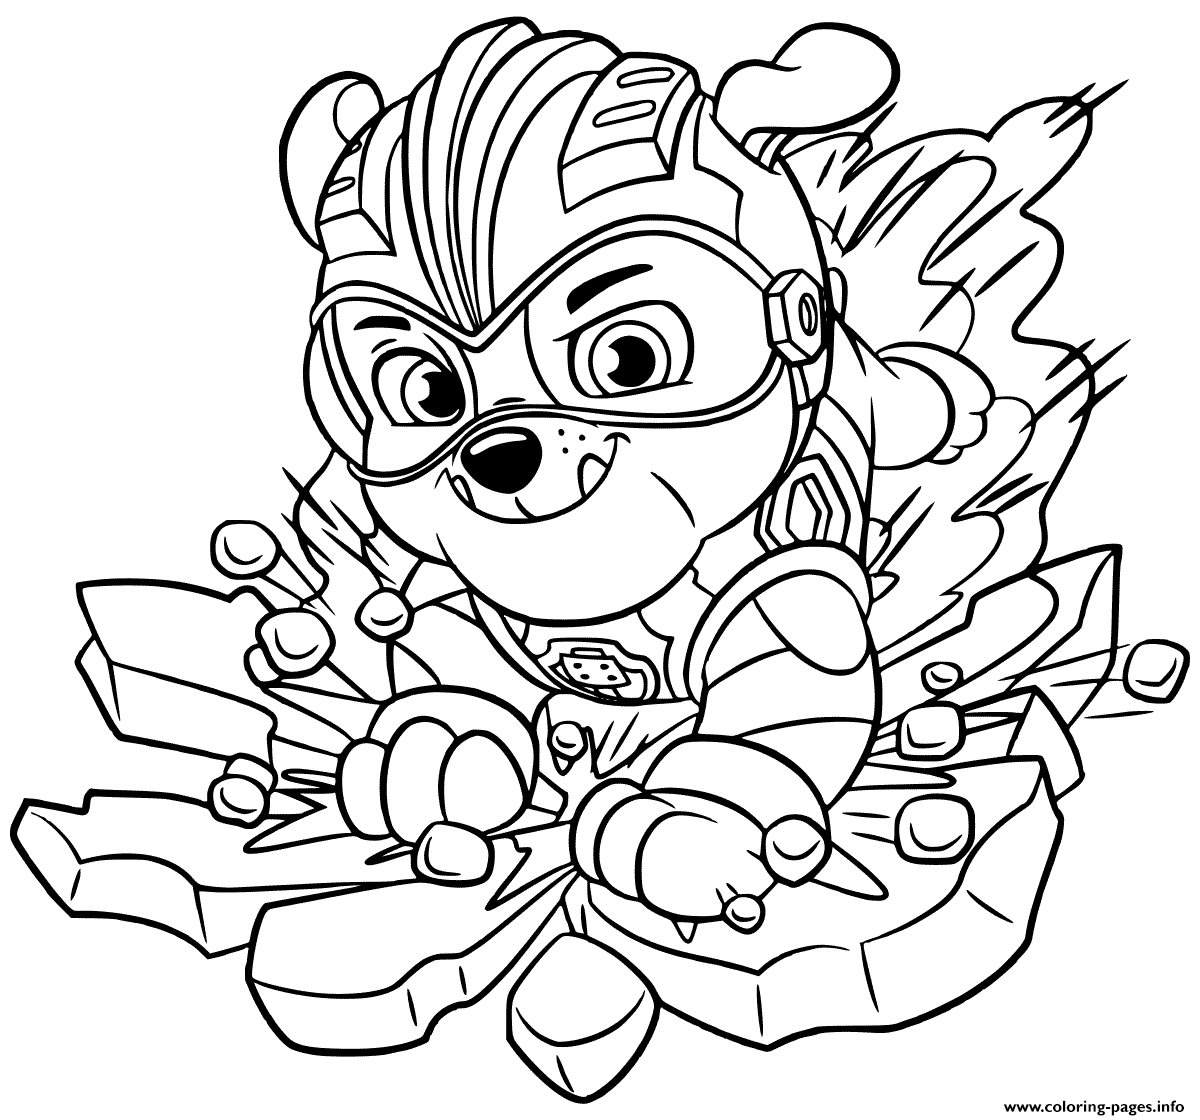 Print Mighty Pups Rubbles Coloring Pages Paw Patrol Coloring Paw Patrol Coloring Pages Coloring Pages